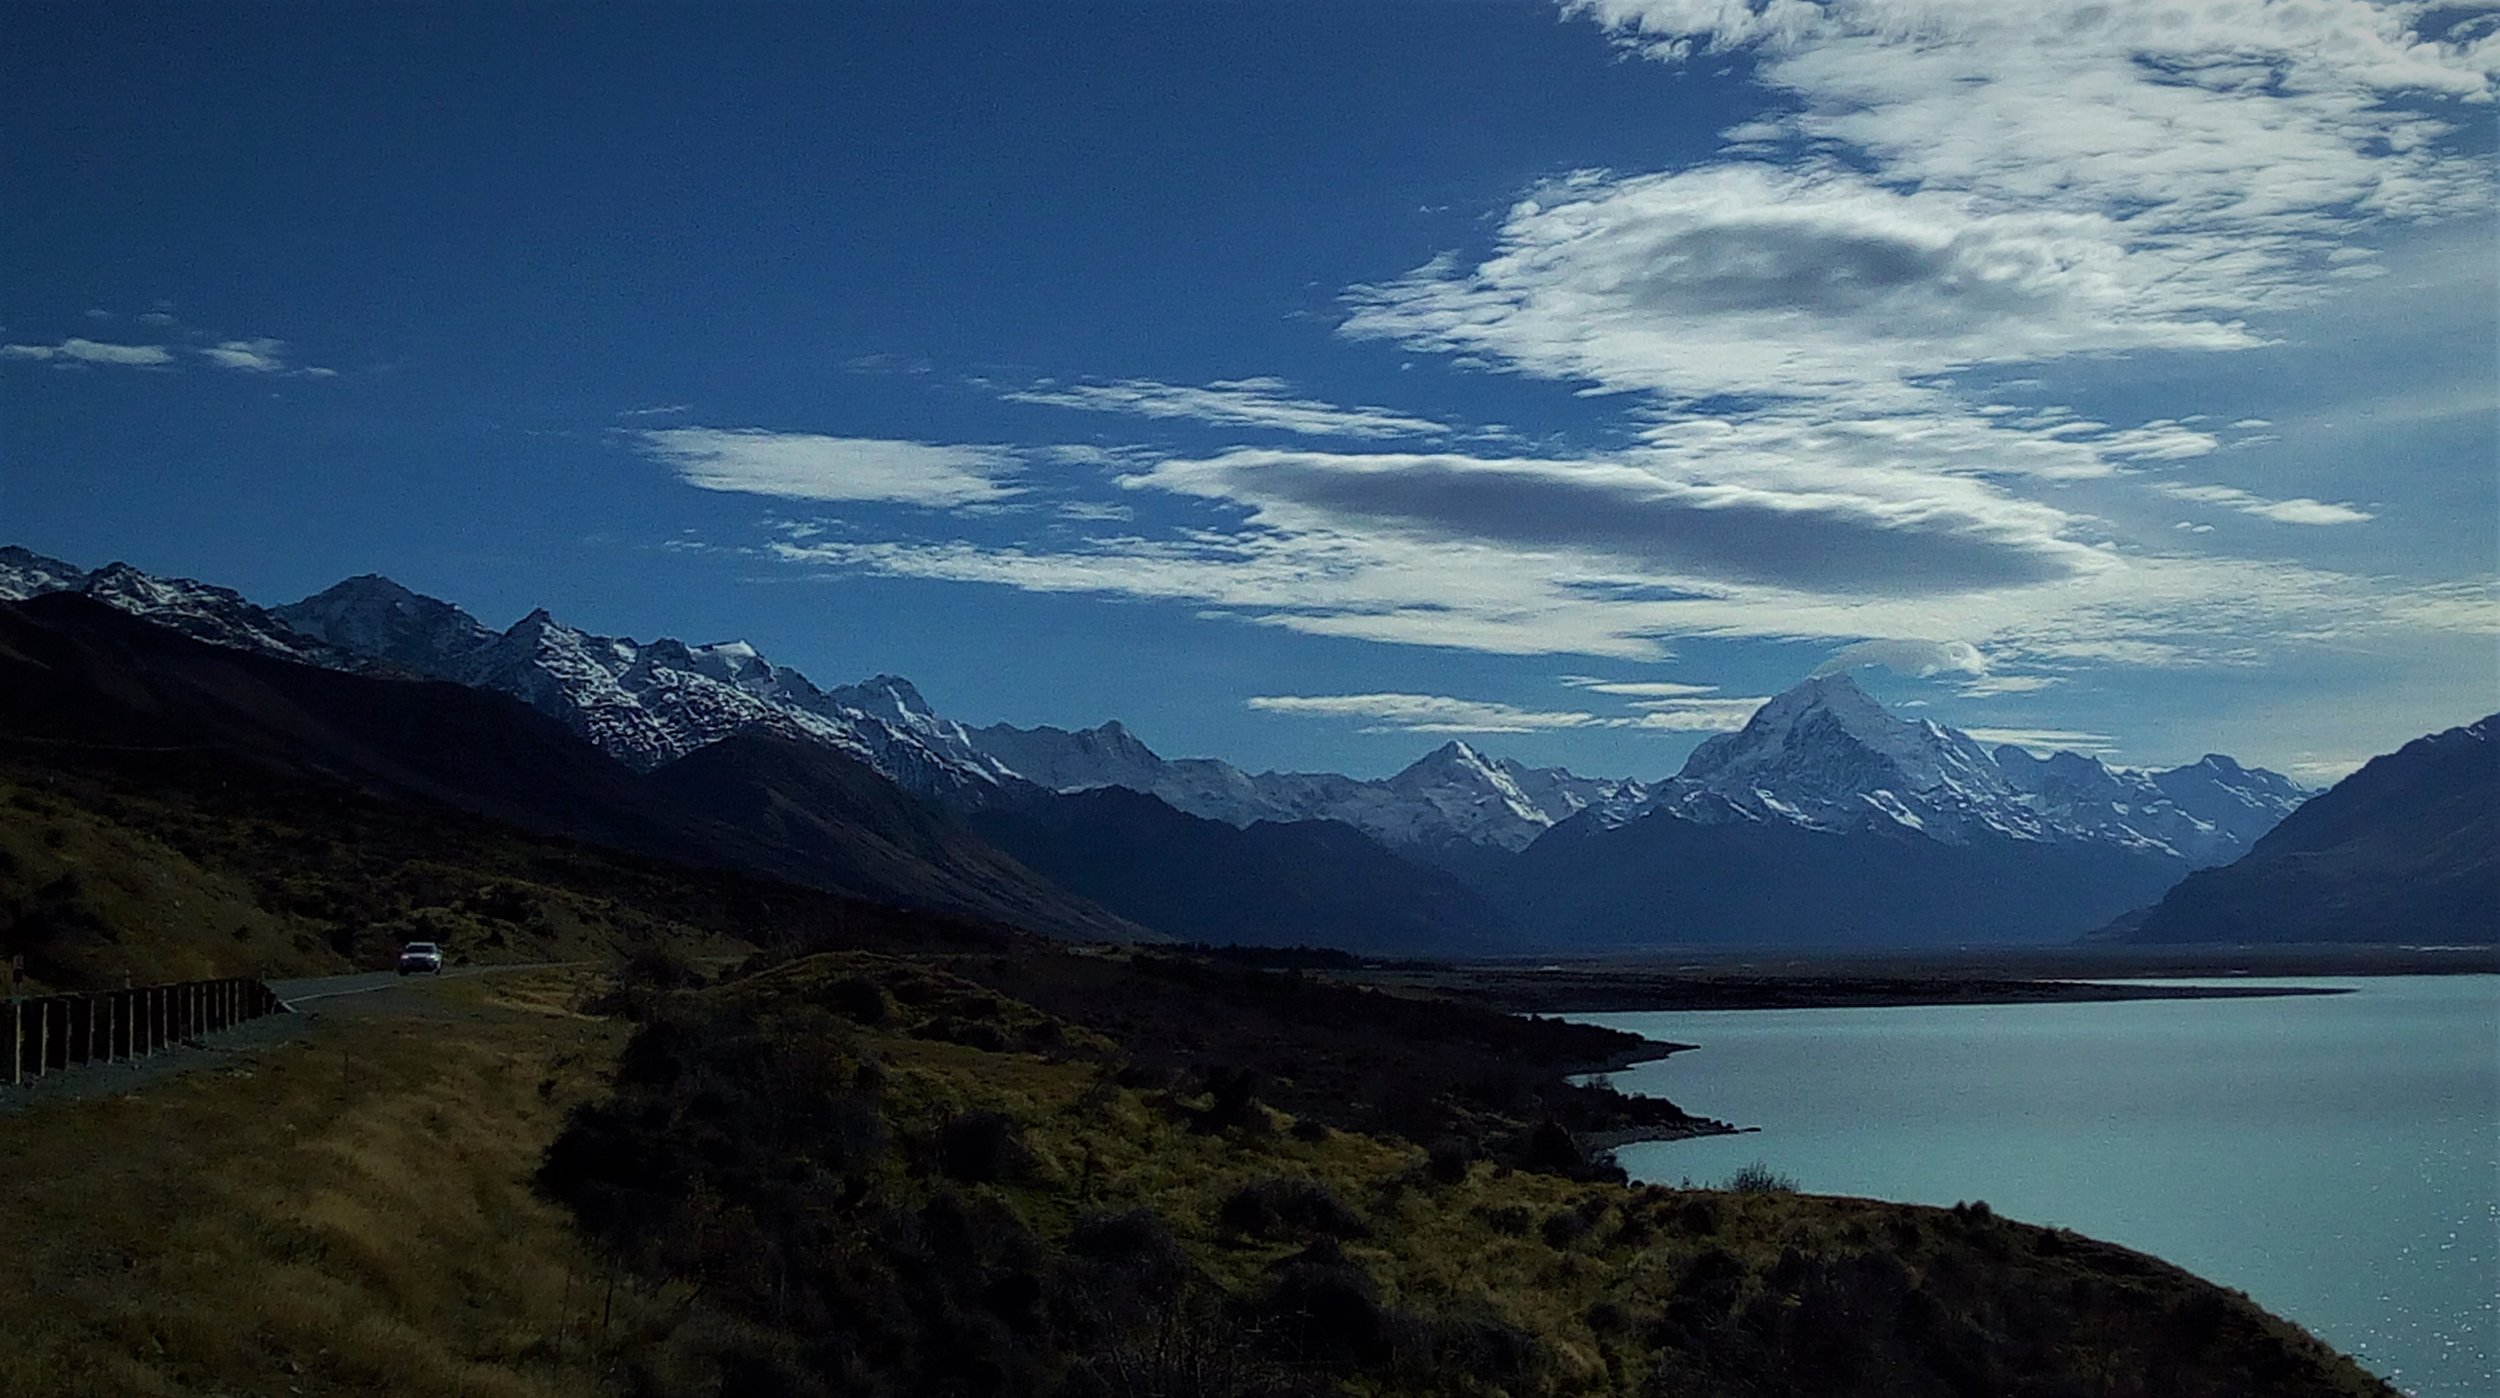 Heading along Lake Pukaki to Mount Cook (centre picture) National park